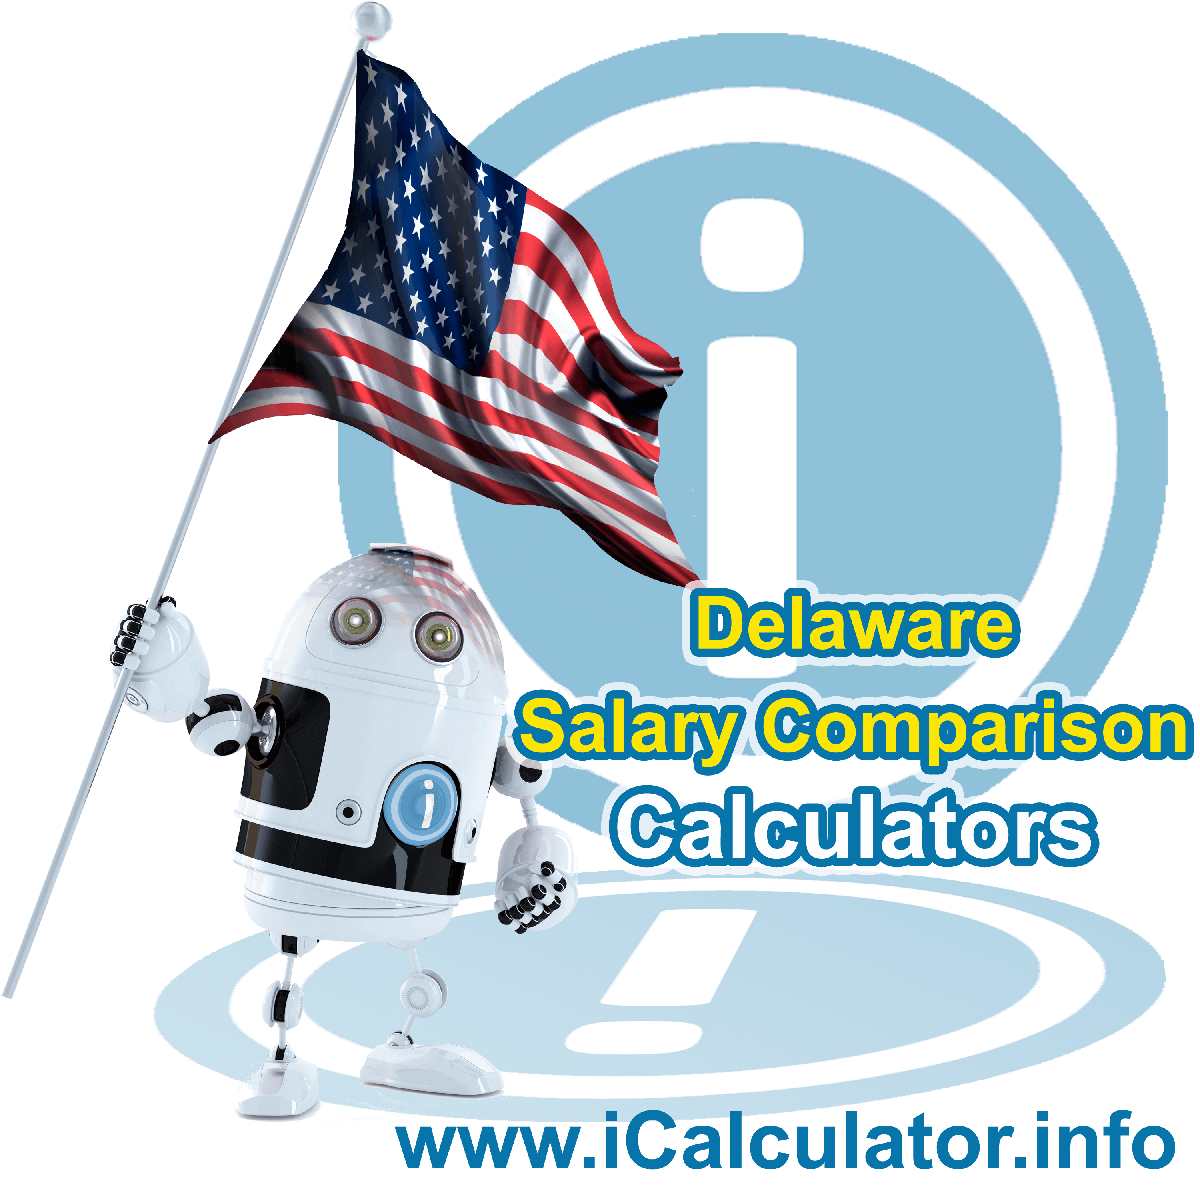 Delaware Salary Comparison Calculator 2020 | iCalculator | The Delaware Salary Comparison Calculator allows you to quickly calculate and compare upto 6 salaries in Delaware or between other states for the 2020 tax year and historical tax years. Its an excellent tool for jobseekers, pay raise comparison and comparison of salaries between different US States